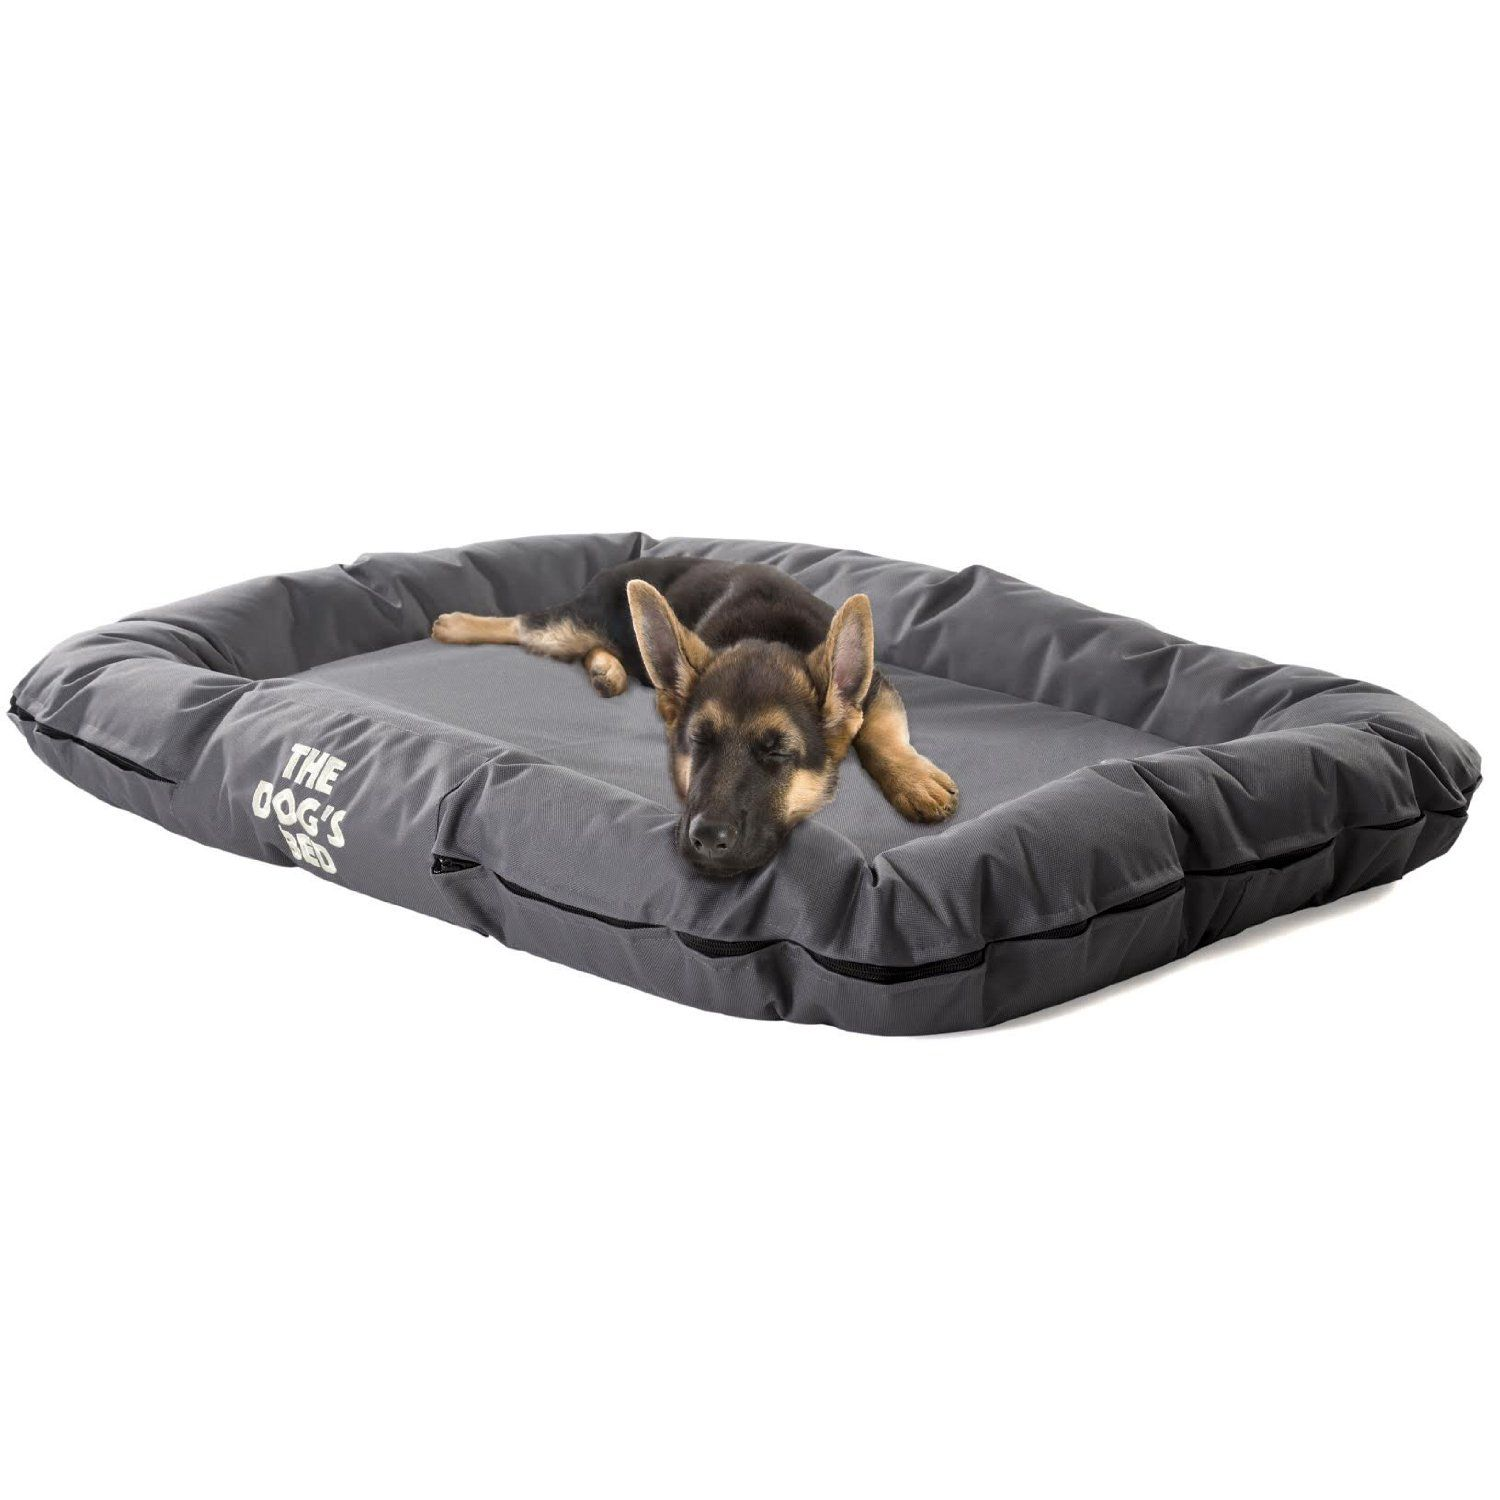 The Dog s Bed Premium Waterproof Dog Beds Quality Durable